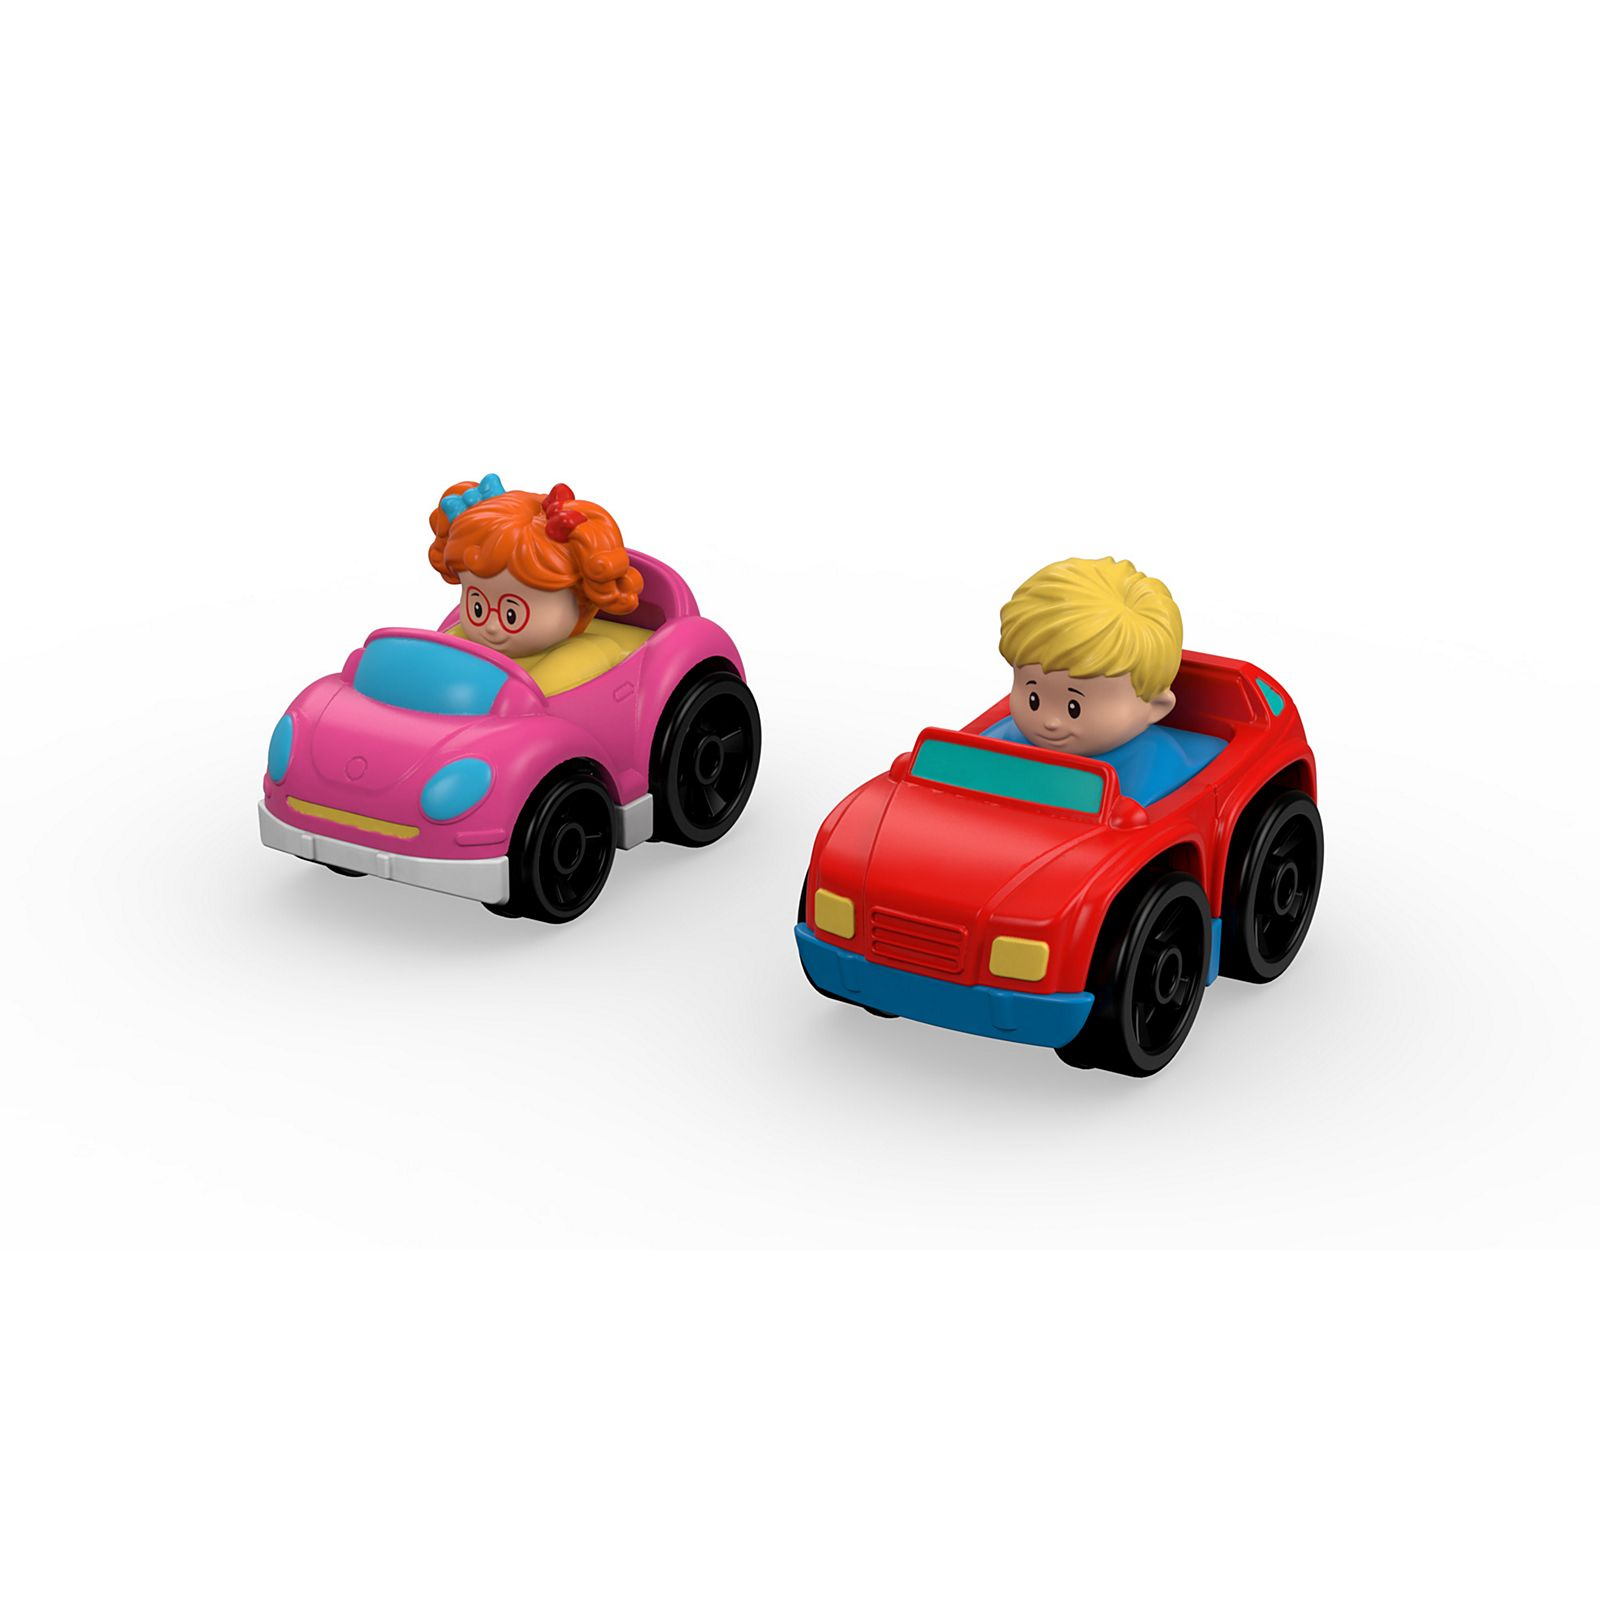 People® Camioneta People® Y Little Coche Camioneta Little Y Coche srBoQtdxCh